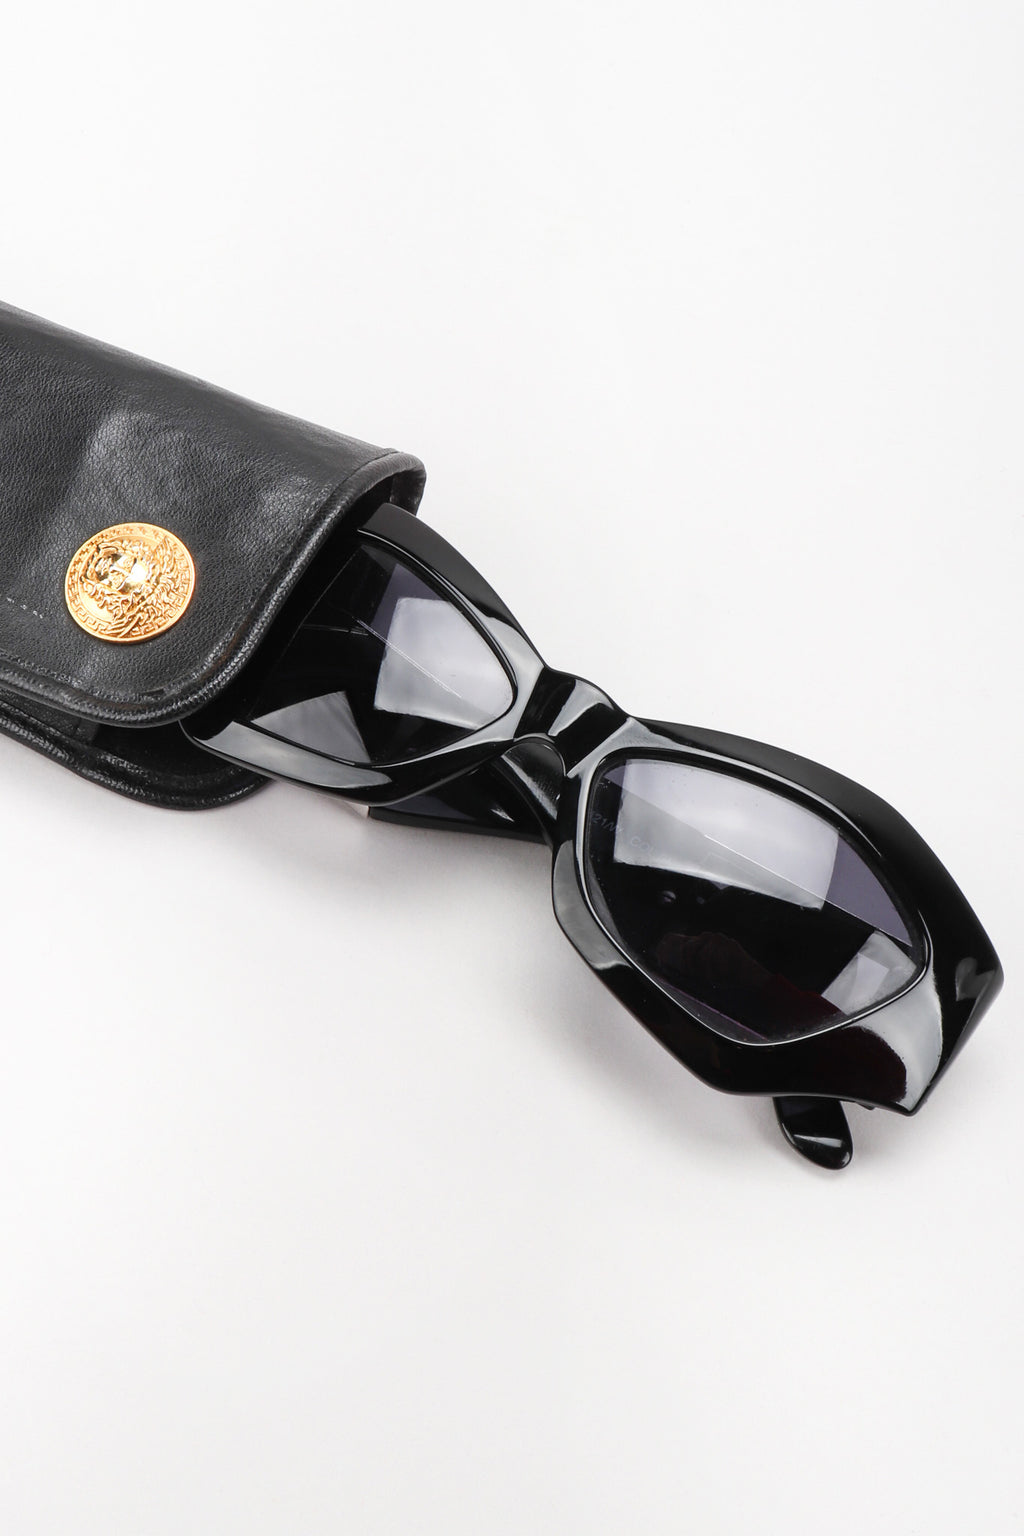 Recess Los Angeles Vintage Gianni Versace Angular Cat Eye MOD.421/W COL.852 Sunglasses